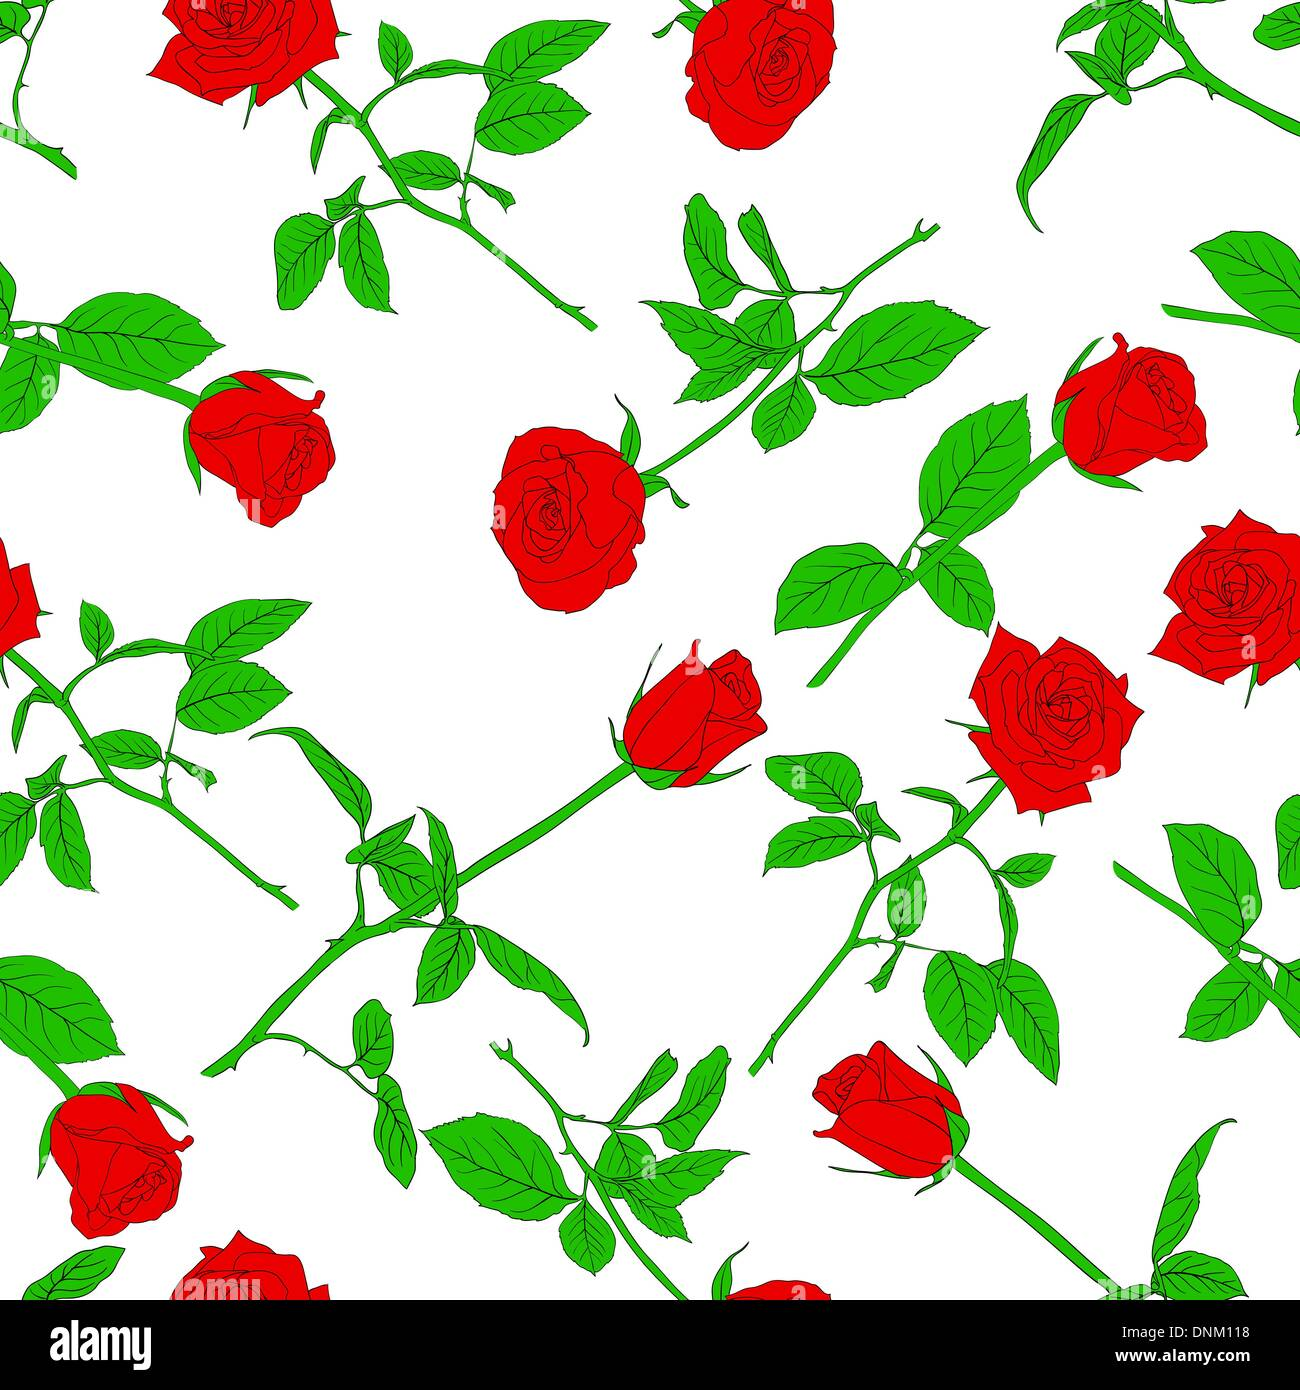 Seamless  background with roses. Could be used as seamless wallpaper, textile, wrapping paper or background - Stock Image